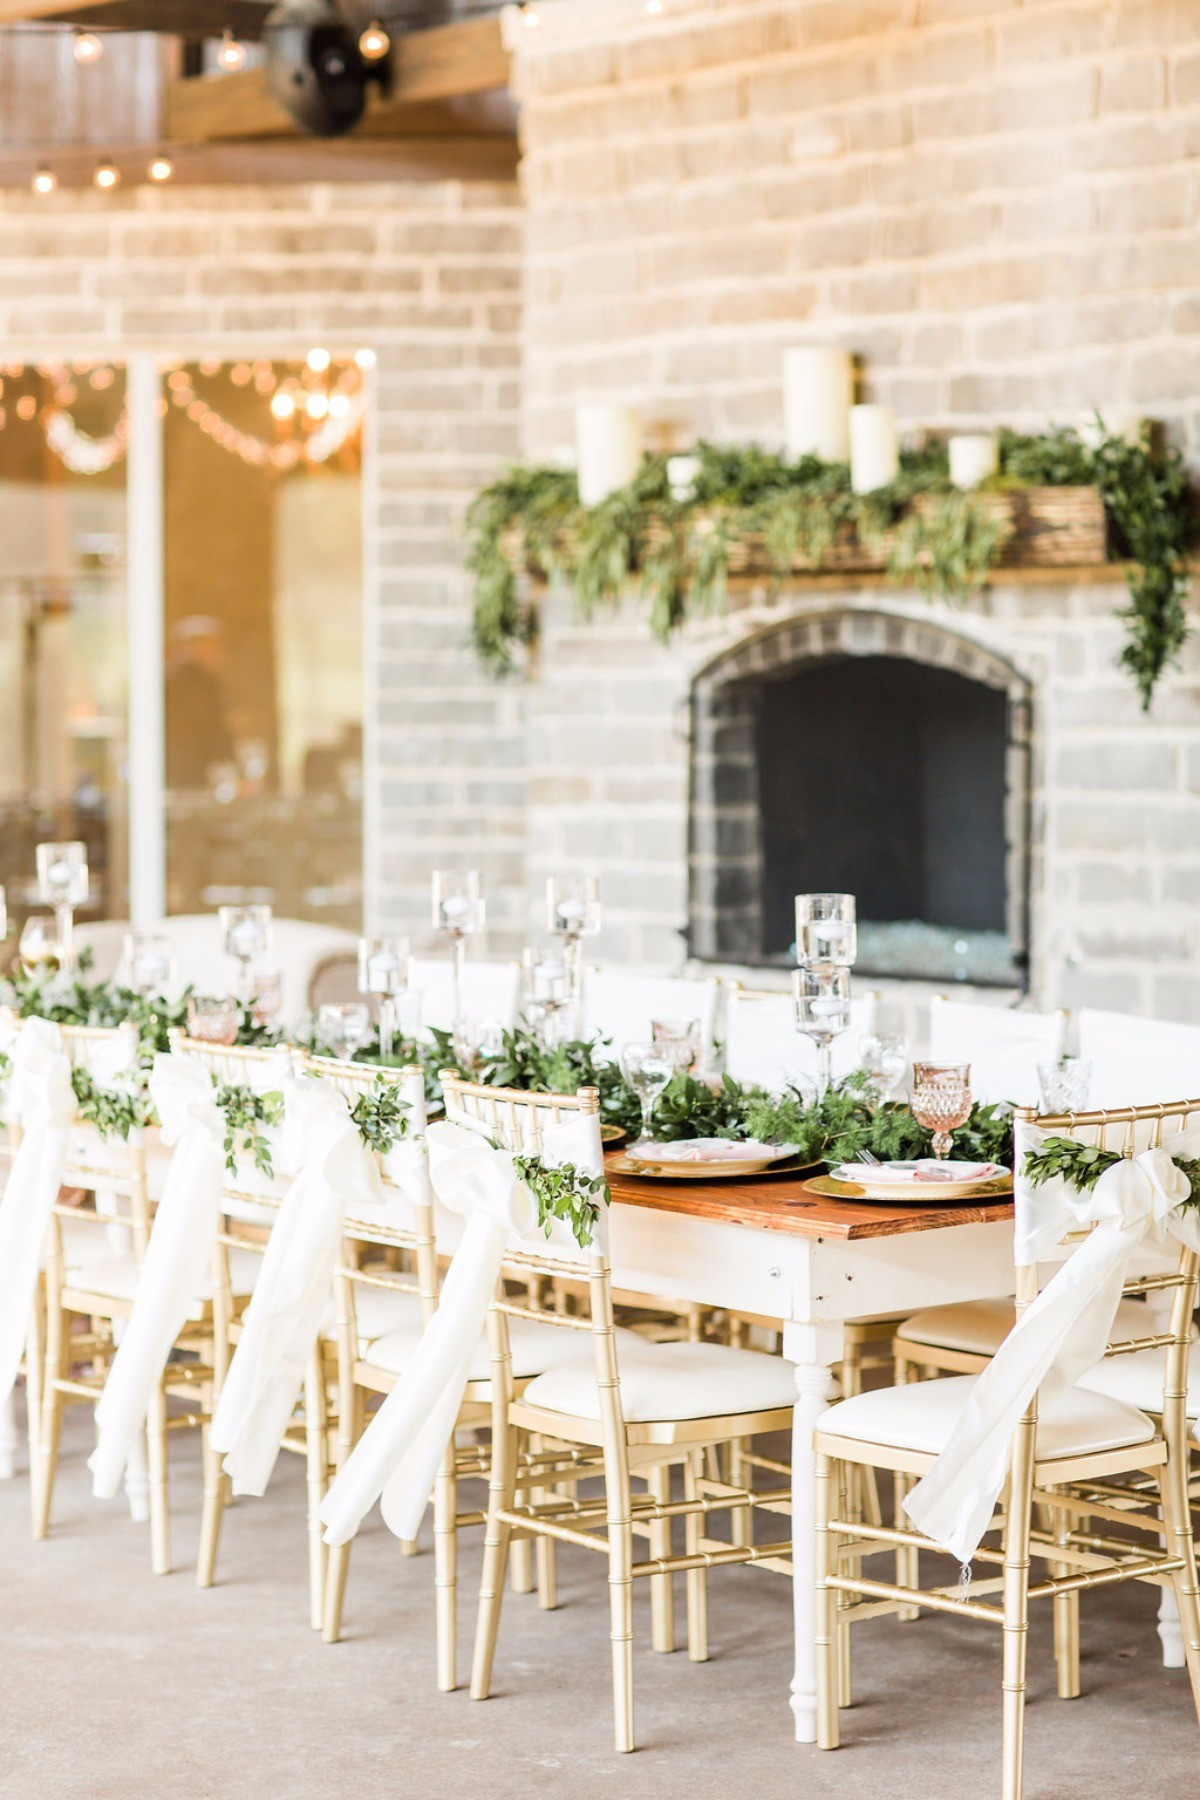 Borrowed Charm Events, Rentals & Styling